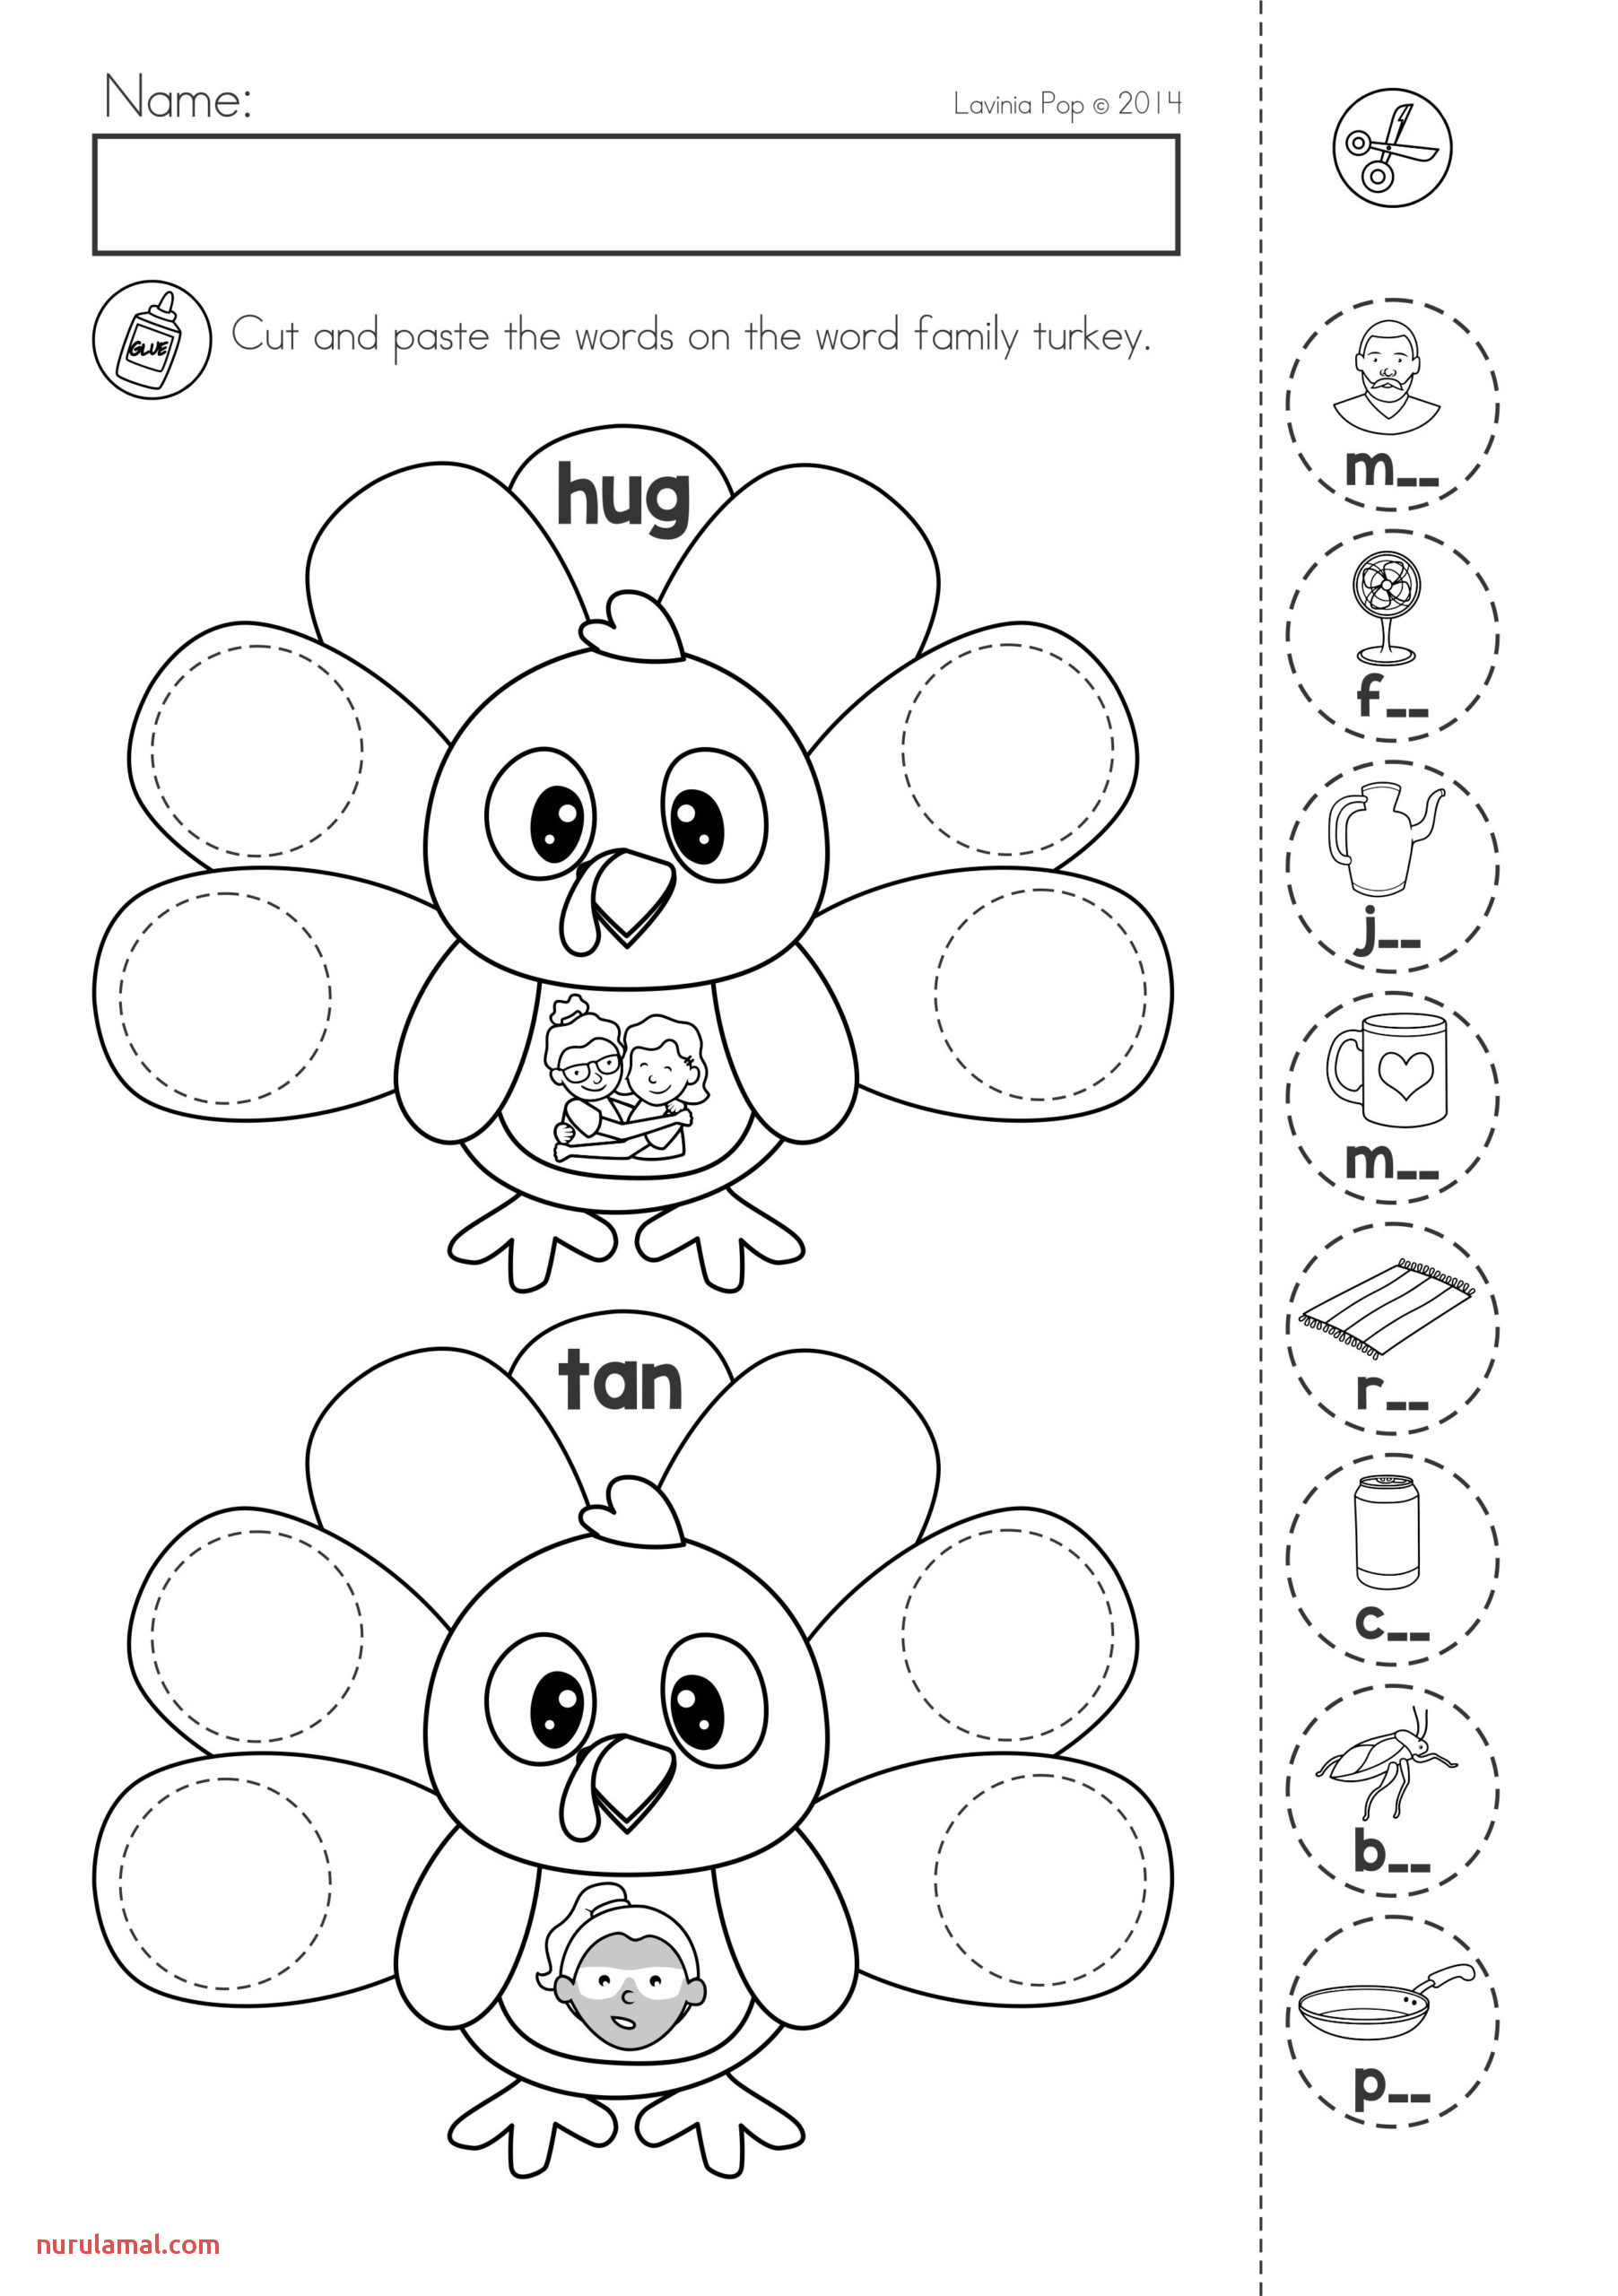 children school worksheets mathematics kids worksheet problems free letter for subtraction word year advanced first grade graduation party find activities emotions printable good scaled